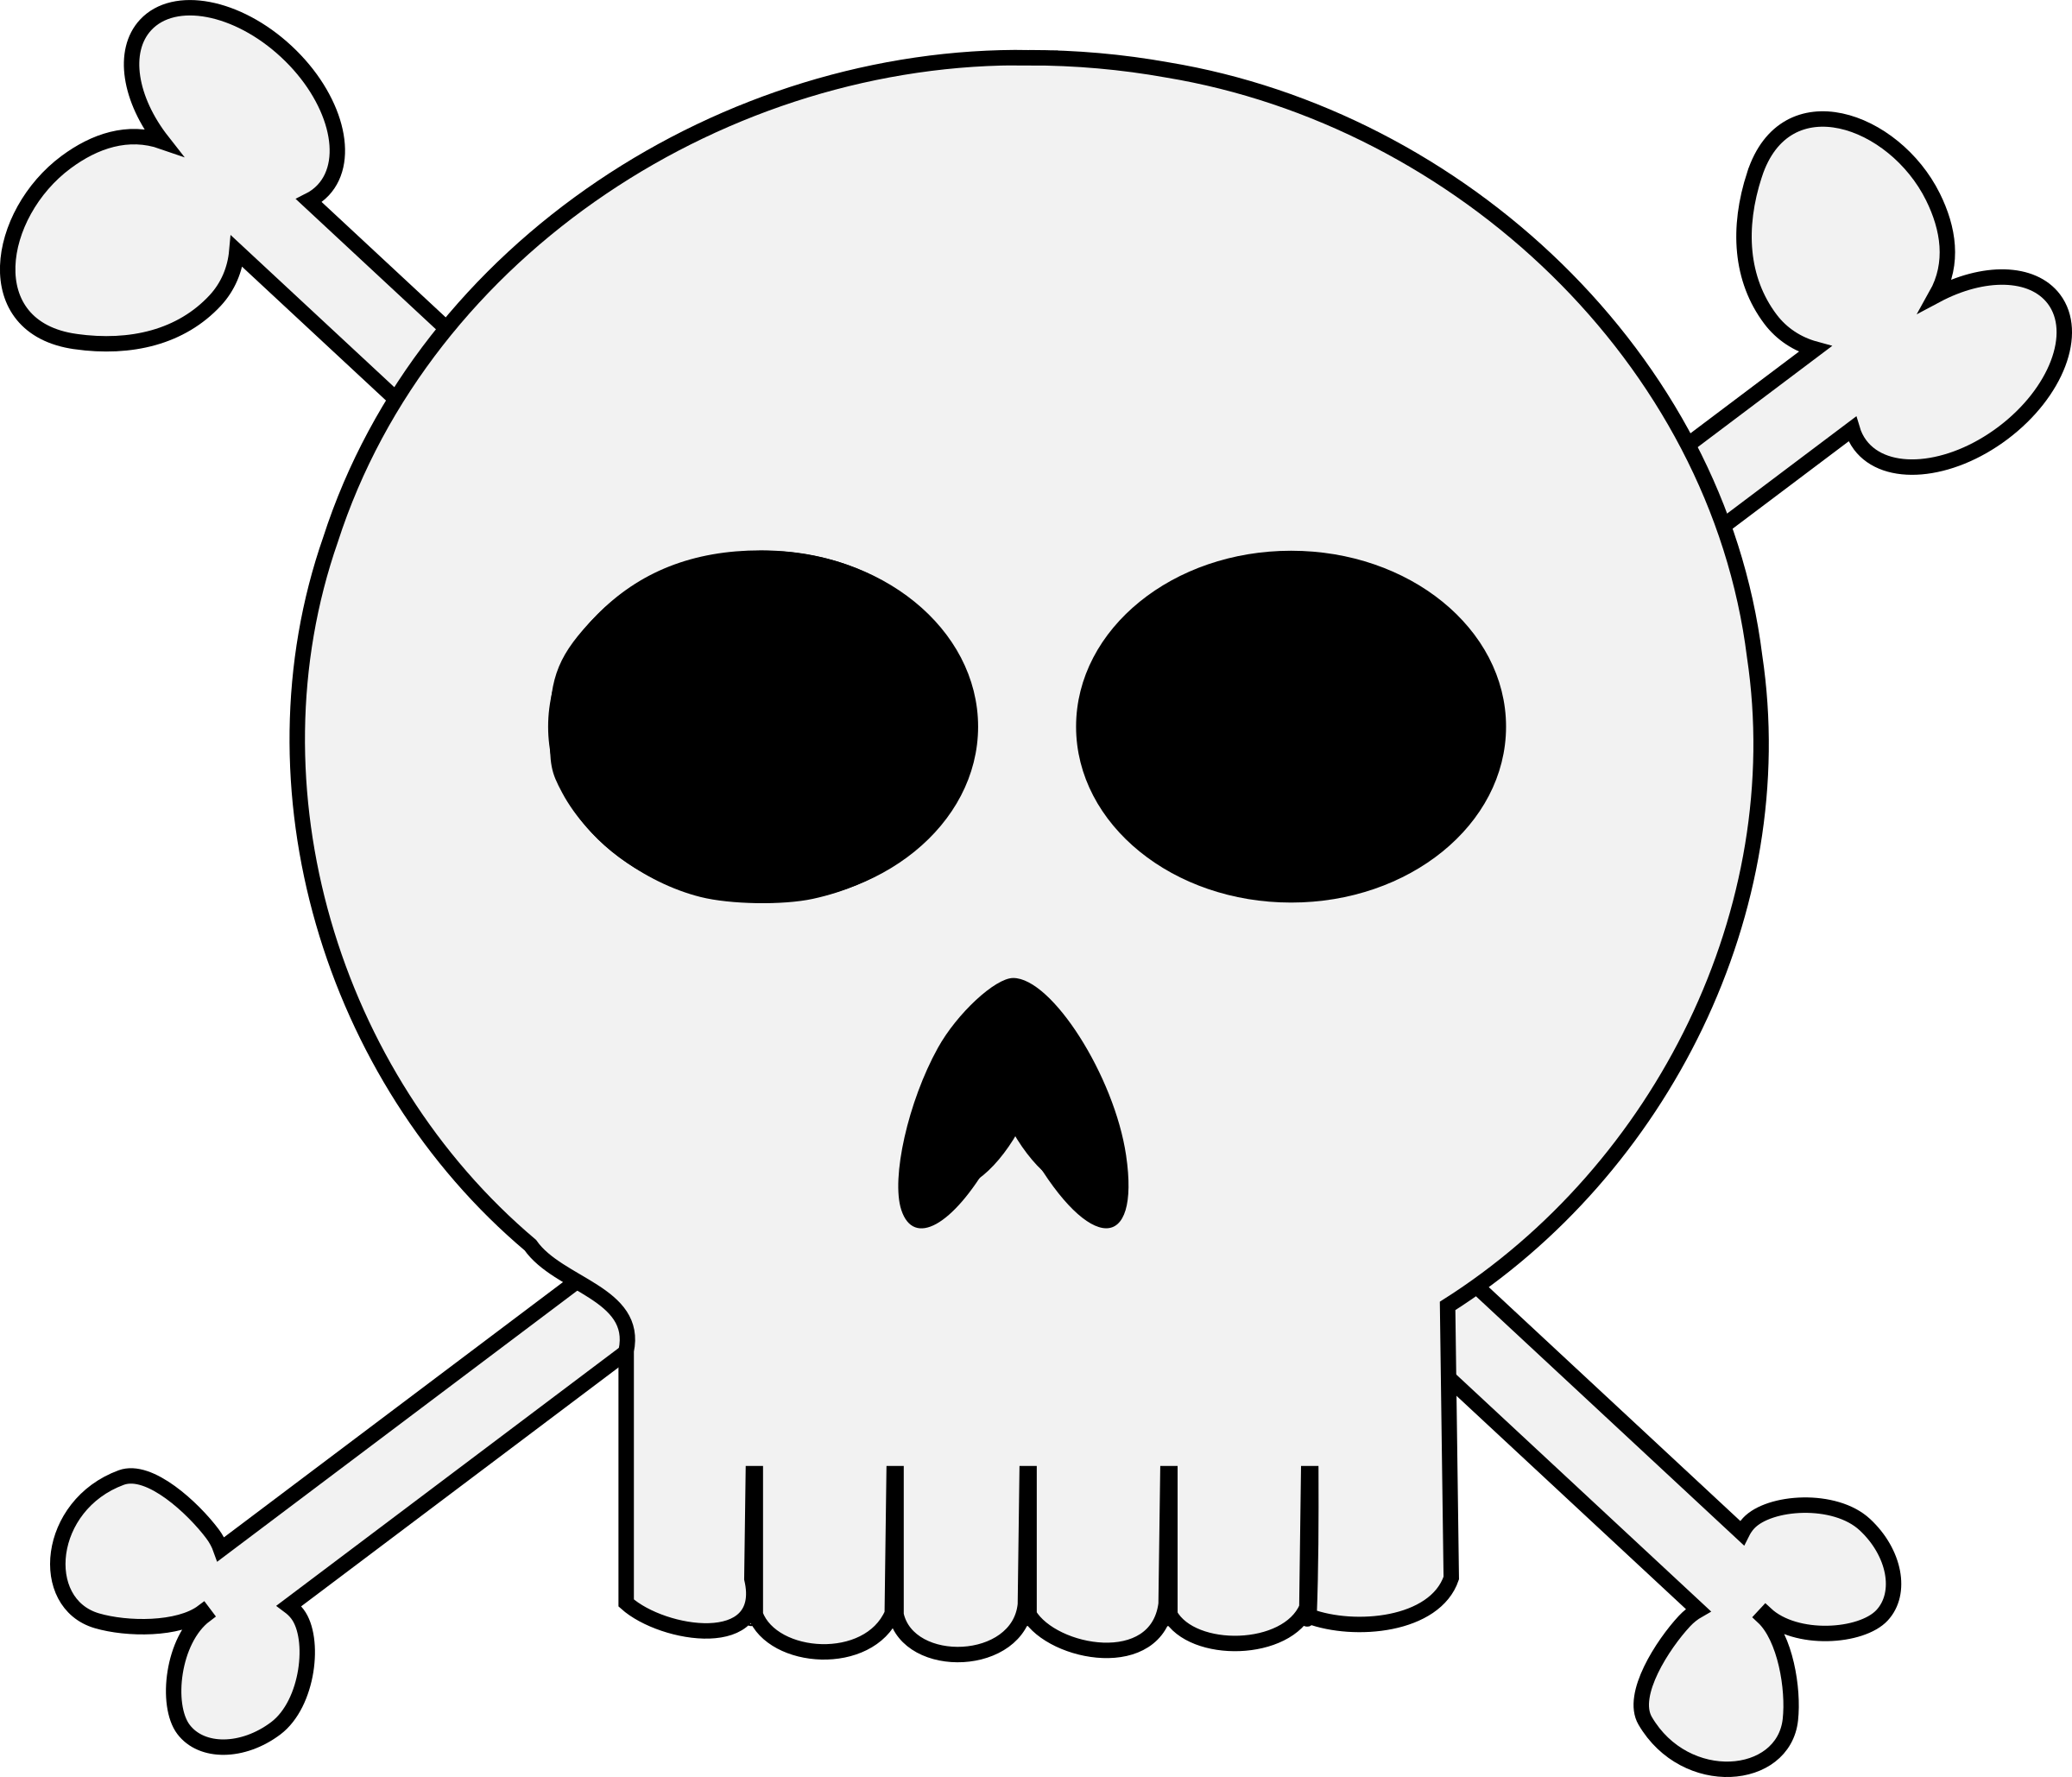 Skull and cross bones clipart vector royalty free Clipart - Punk Skull Crossbones vector royalty free